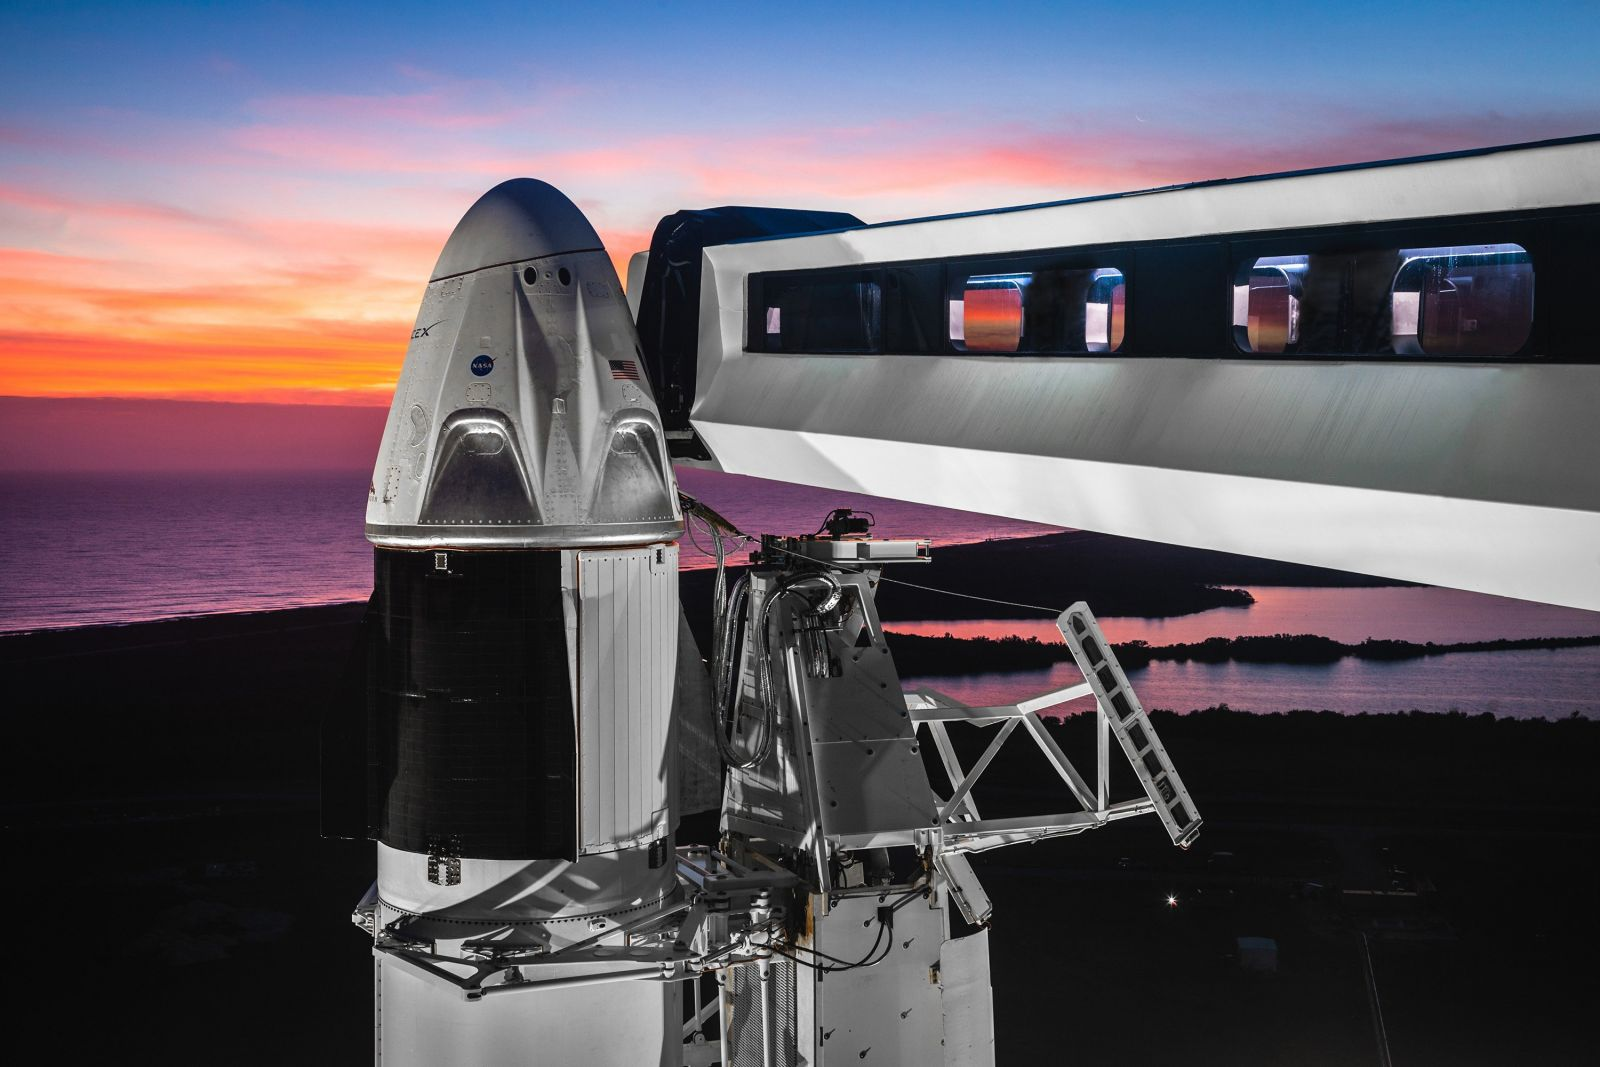 SpaceX's Falcon 9 with Crew Dragon stands at Launch Complex 39A. NASA and SpaceX completed a flight readiness review on Feb. 22, 2019, and officially set March 2 as the first attempt to launch the spacecraft toward the International Space Station. Photo Credit: SpaceX